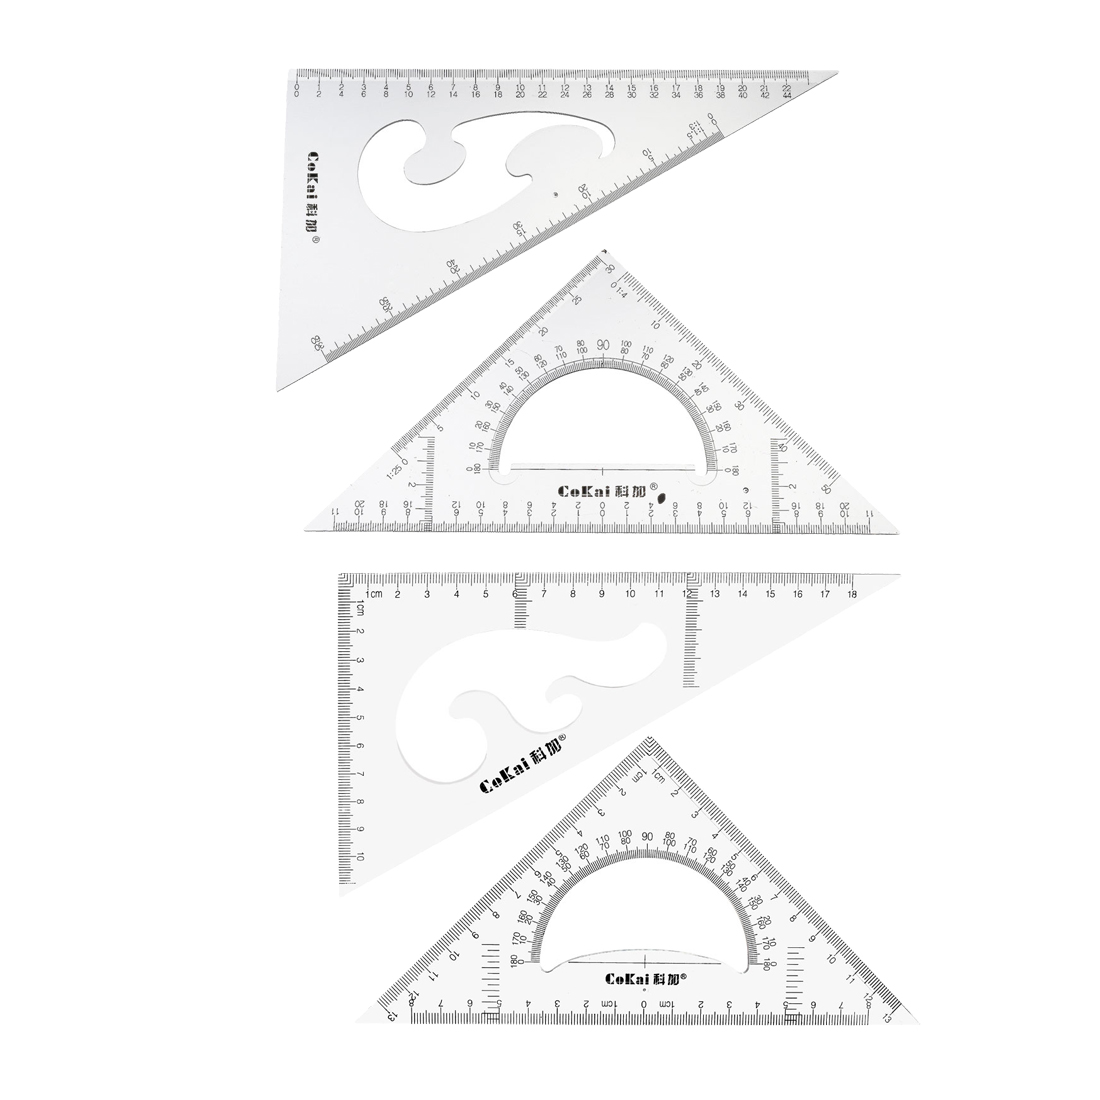 Uxcell 1 Set Triangle Ruler Square Set With Built-in Protractor Degrees For Classroom Office Home Engineering Etc. 5 Size